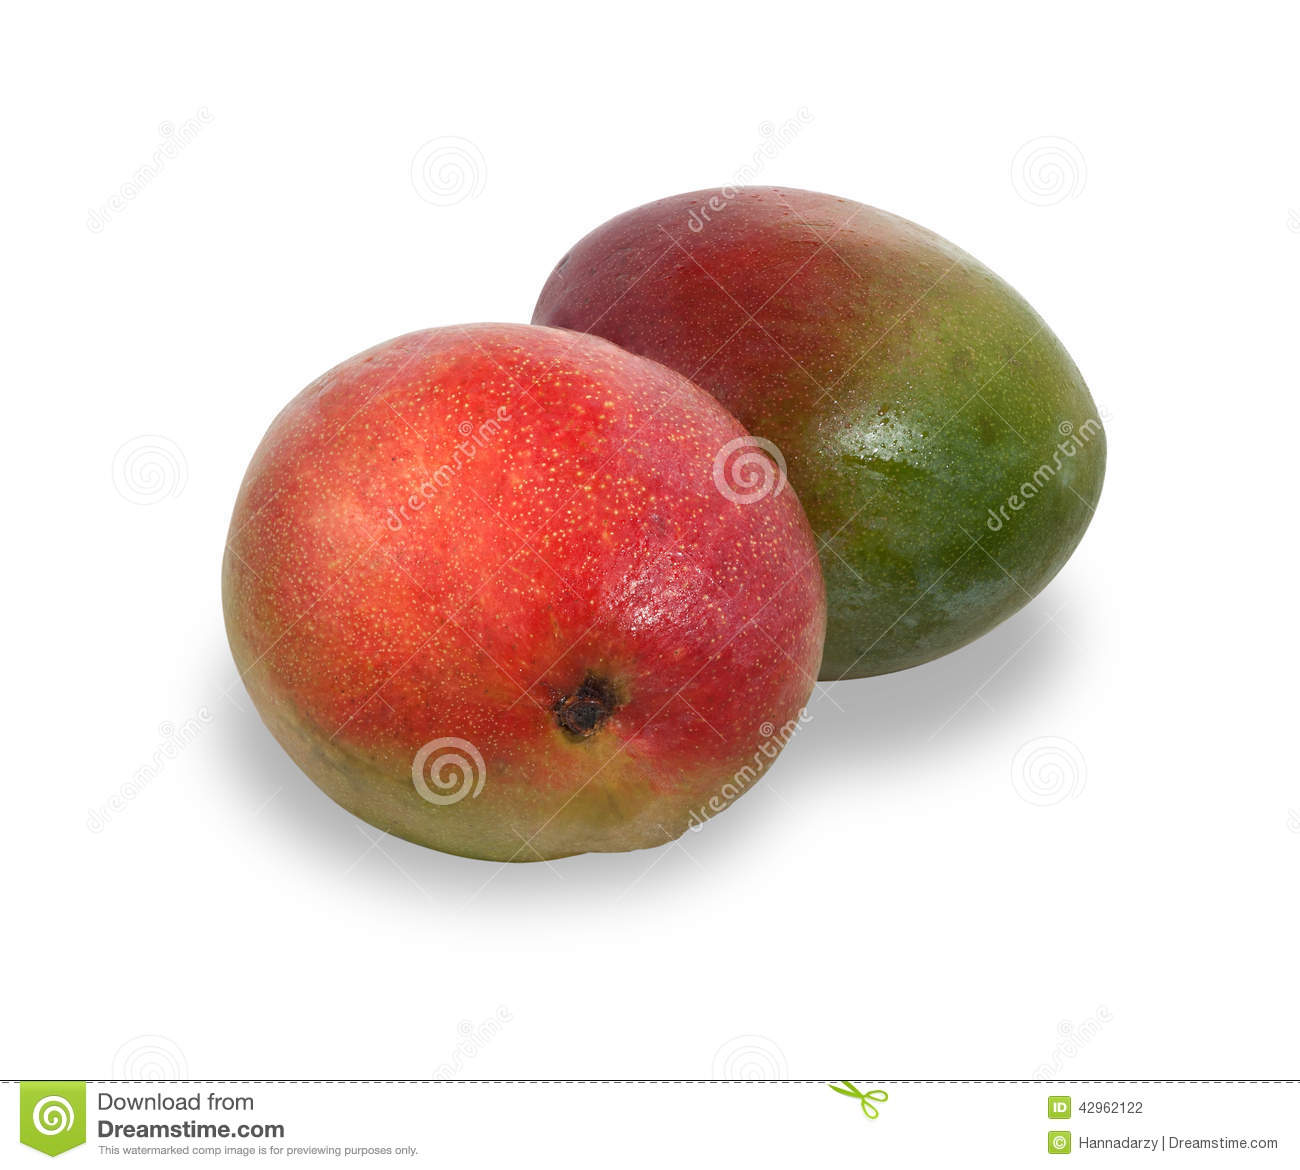 ... red and green mango fruit isolated on white background with shadow